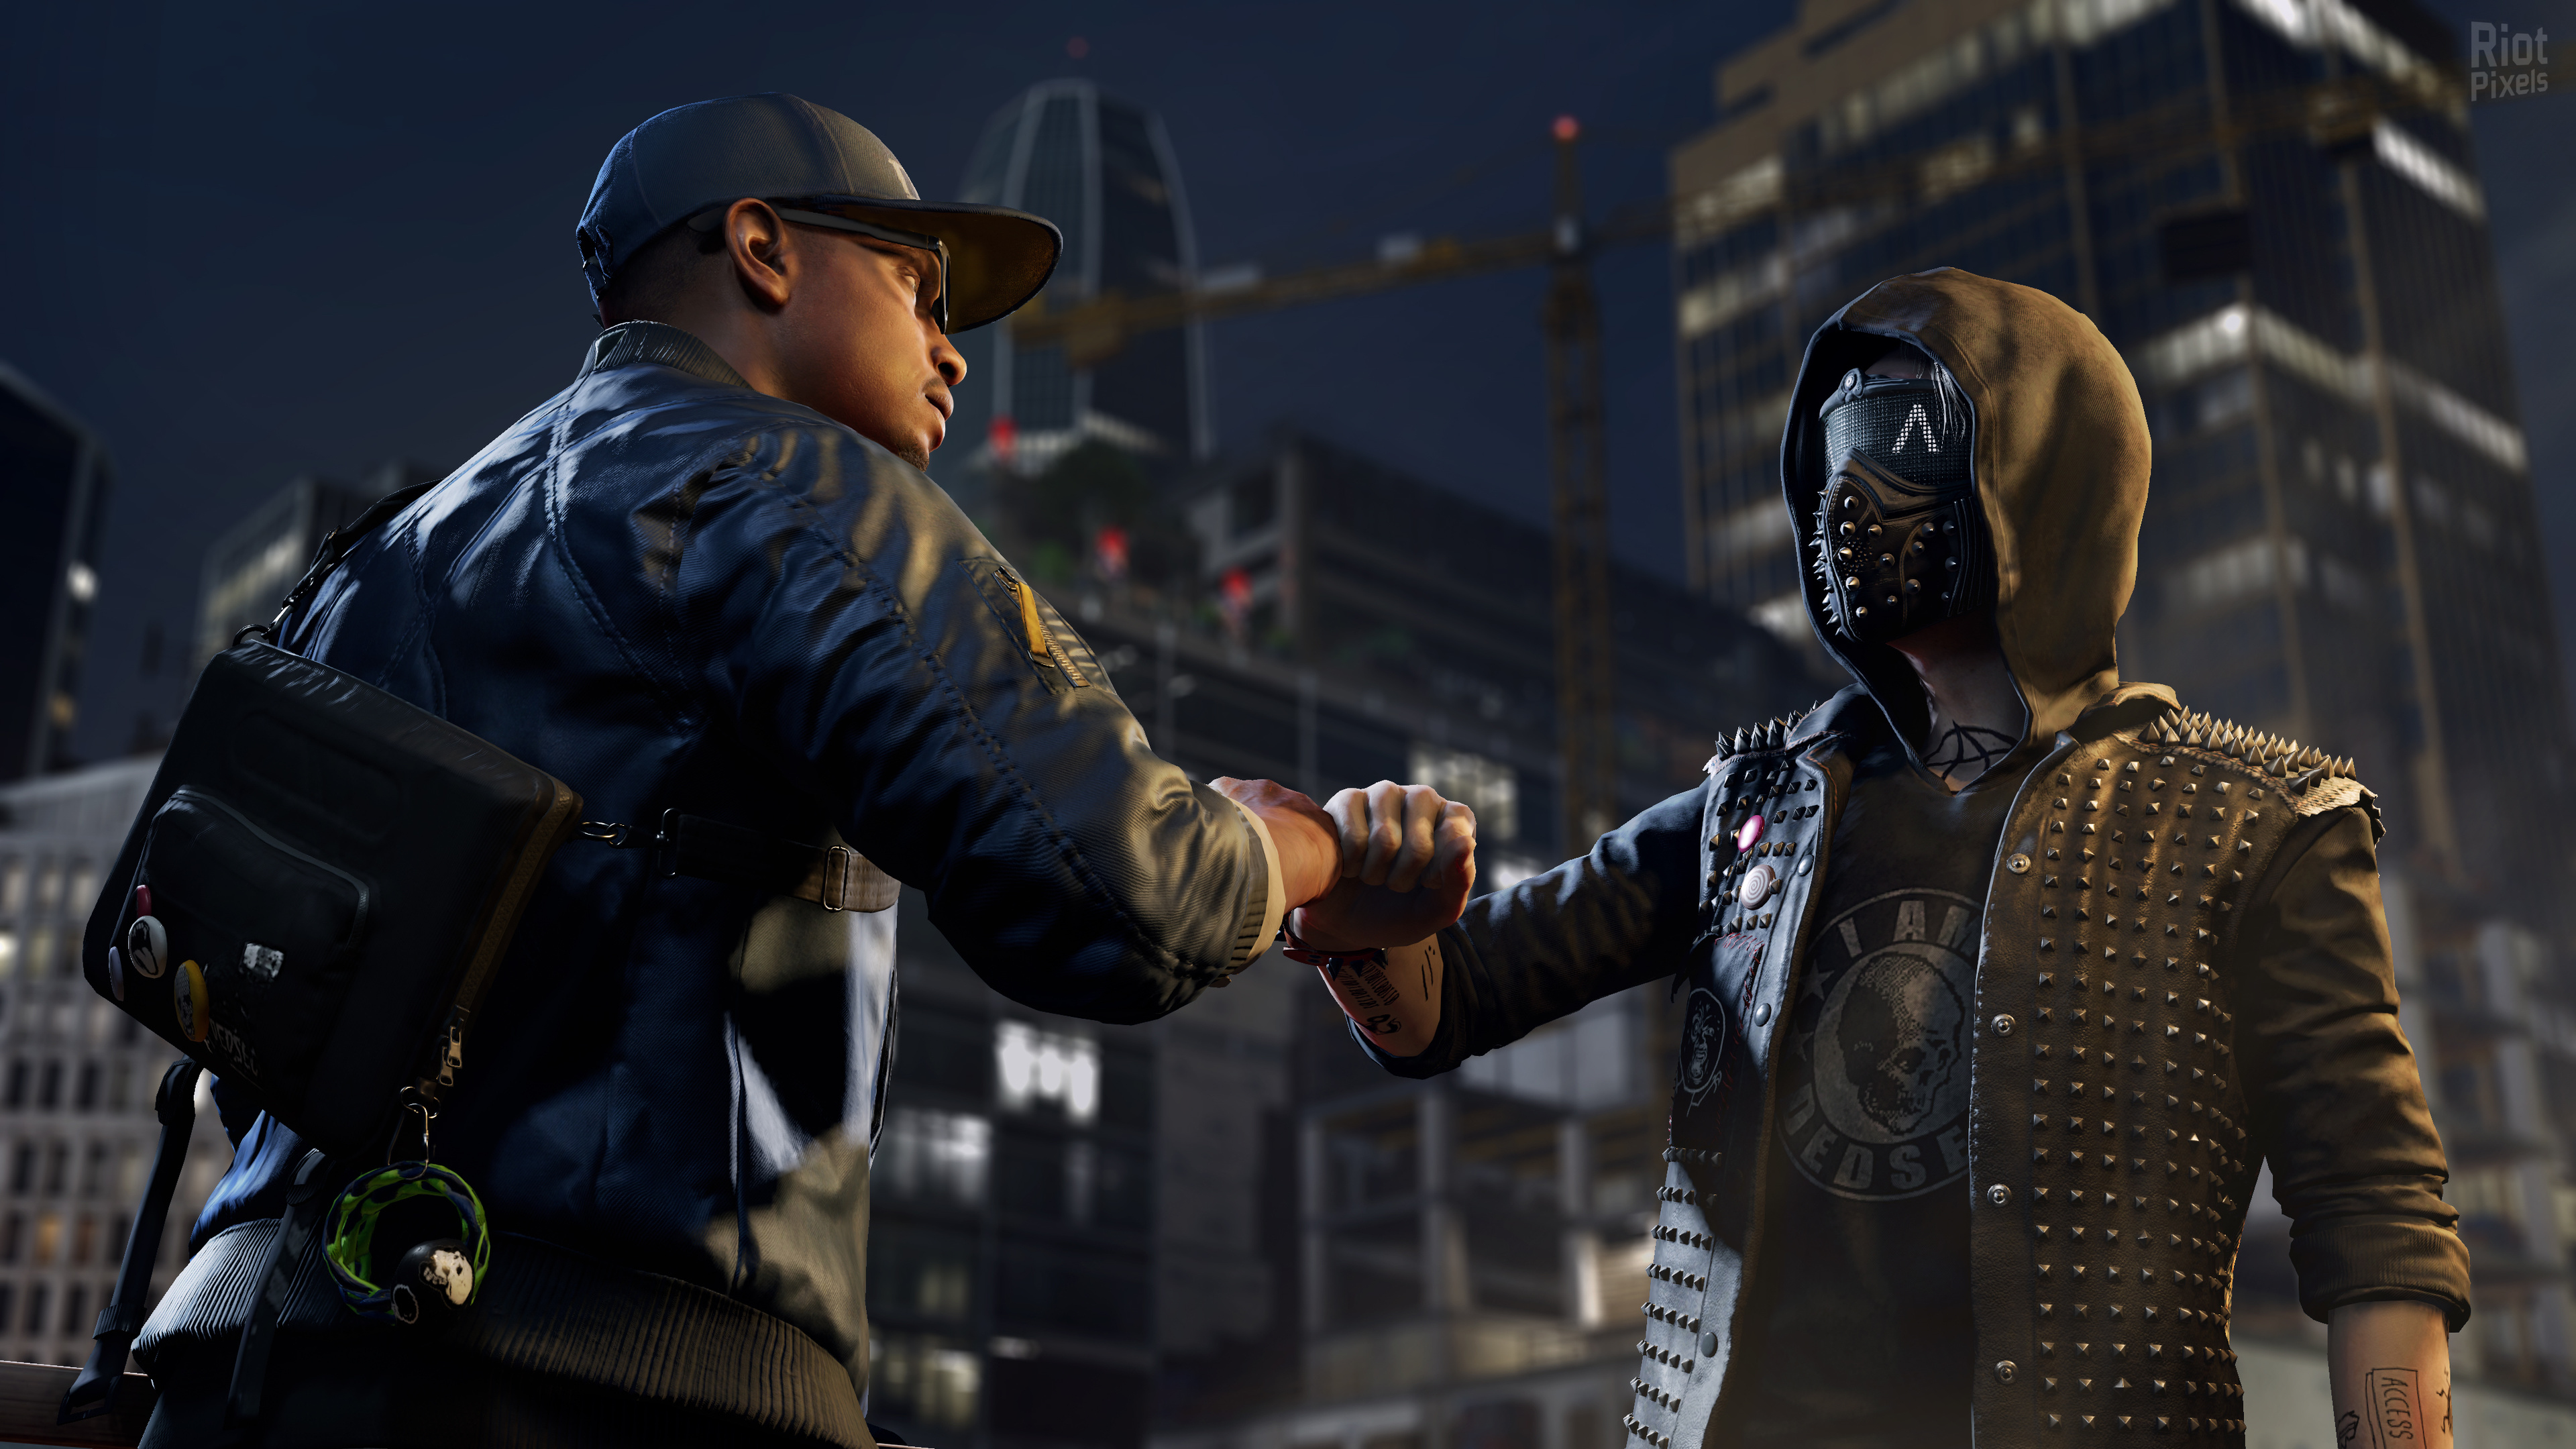 http://s01.riotpixels.net/data/2e/4c/2e4c6e92-e87b-4577-a05b-3e00a9dfbad1.jpg.2160p.jpg/screenshot.watch-dogs-2.3840x2160.2016-06-14.28.jpg